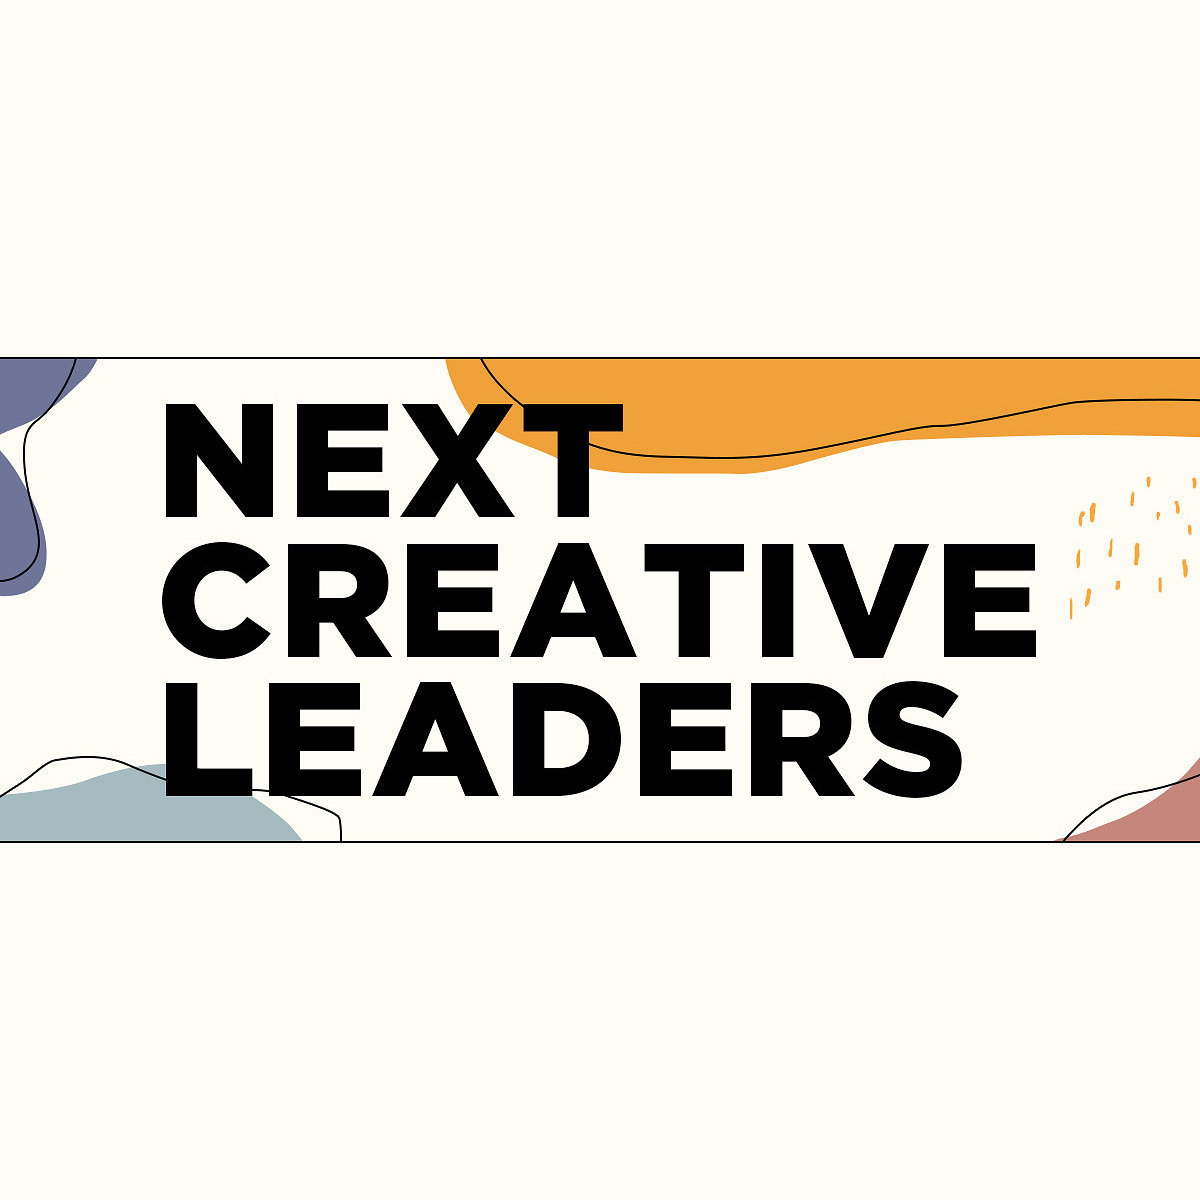 Next Creative Leaders 2020 - Now Open to Non-Binary Creatives